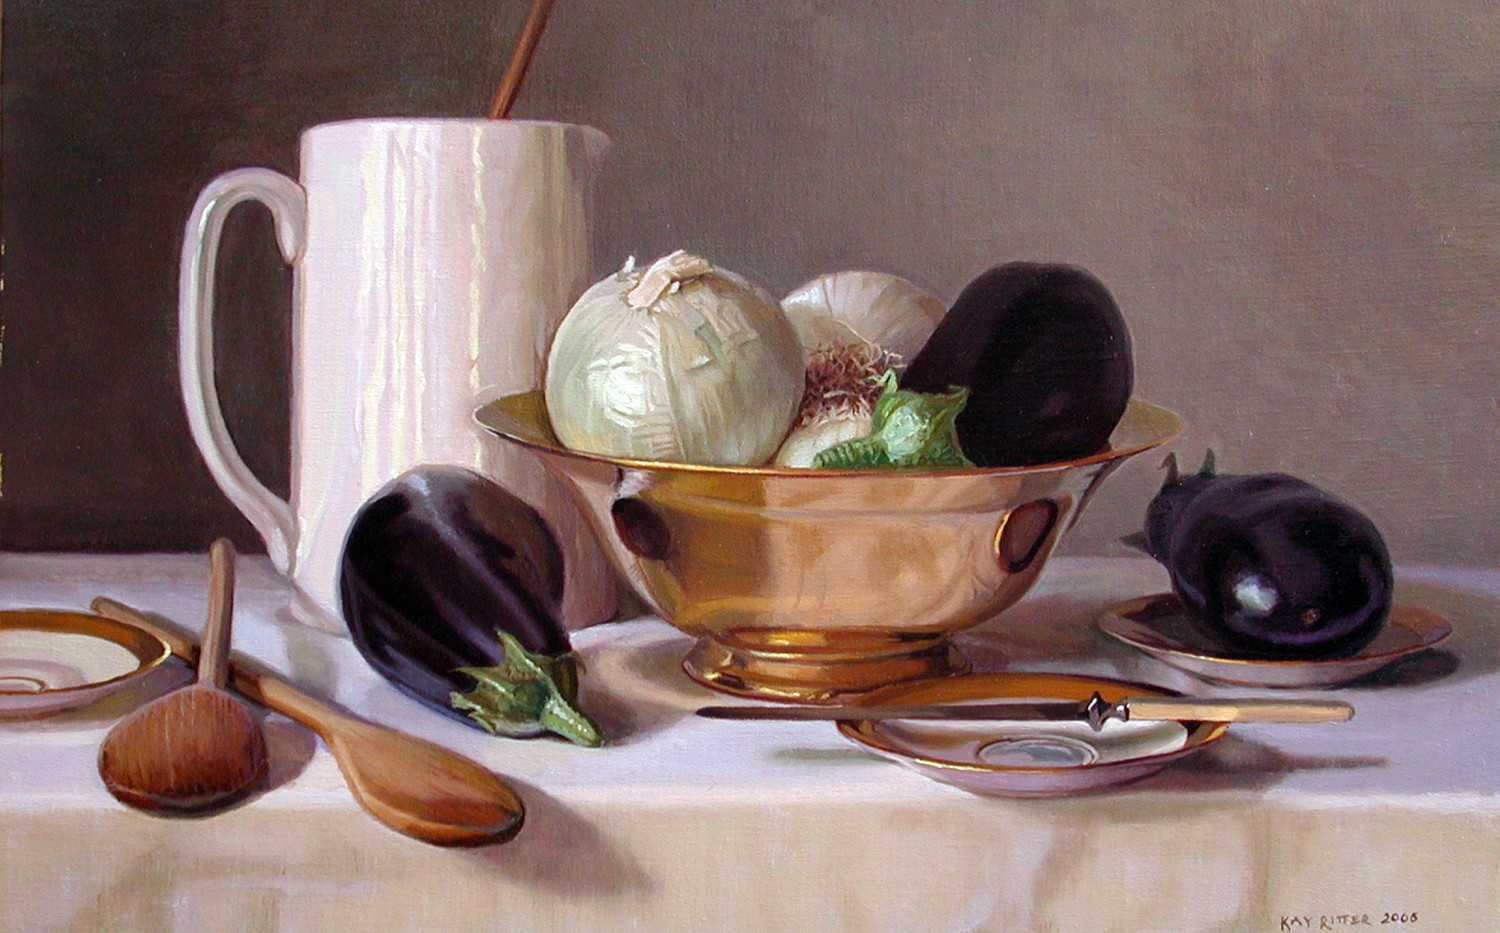 Eggplant and White Onions